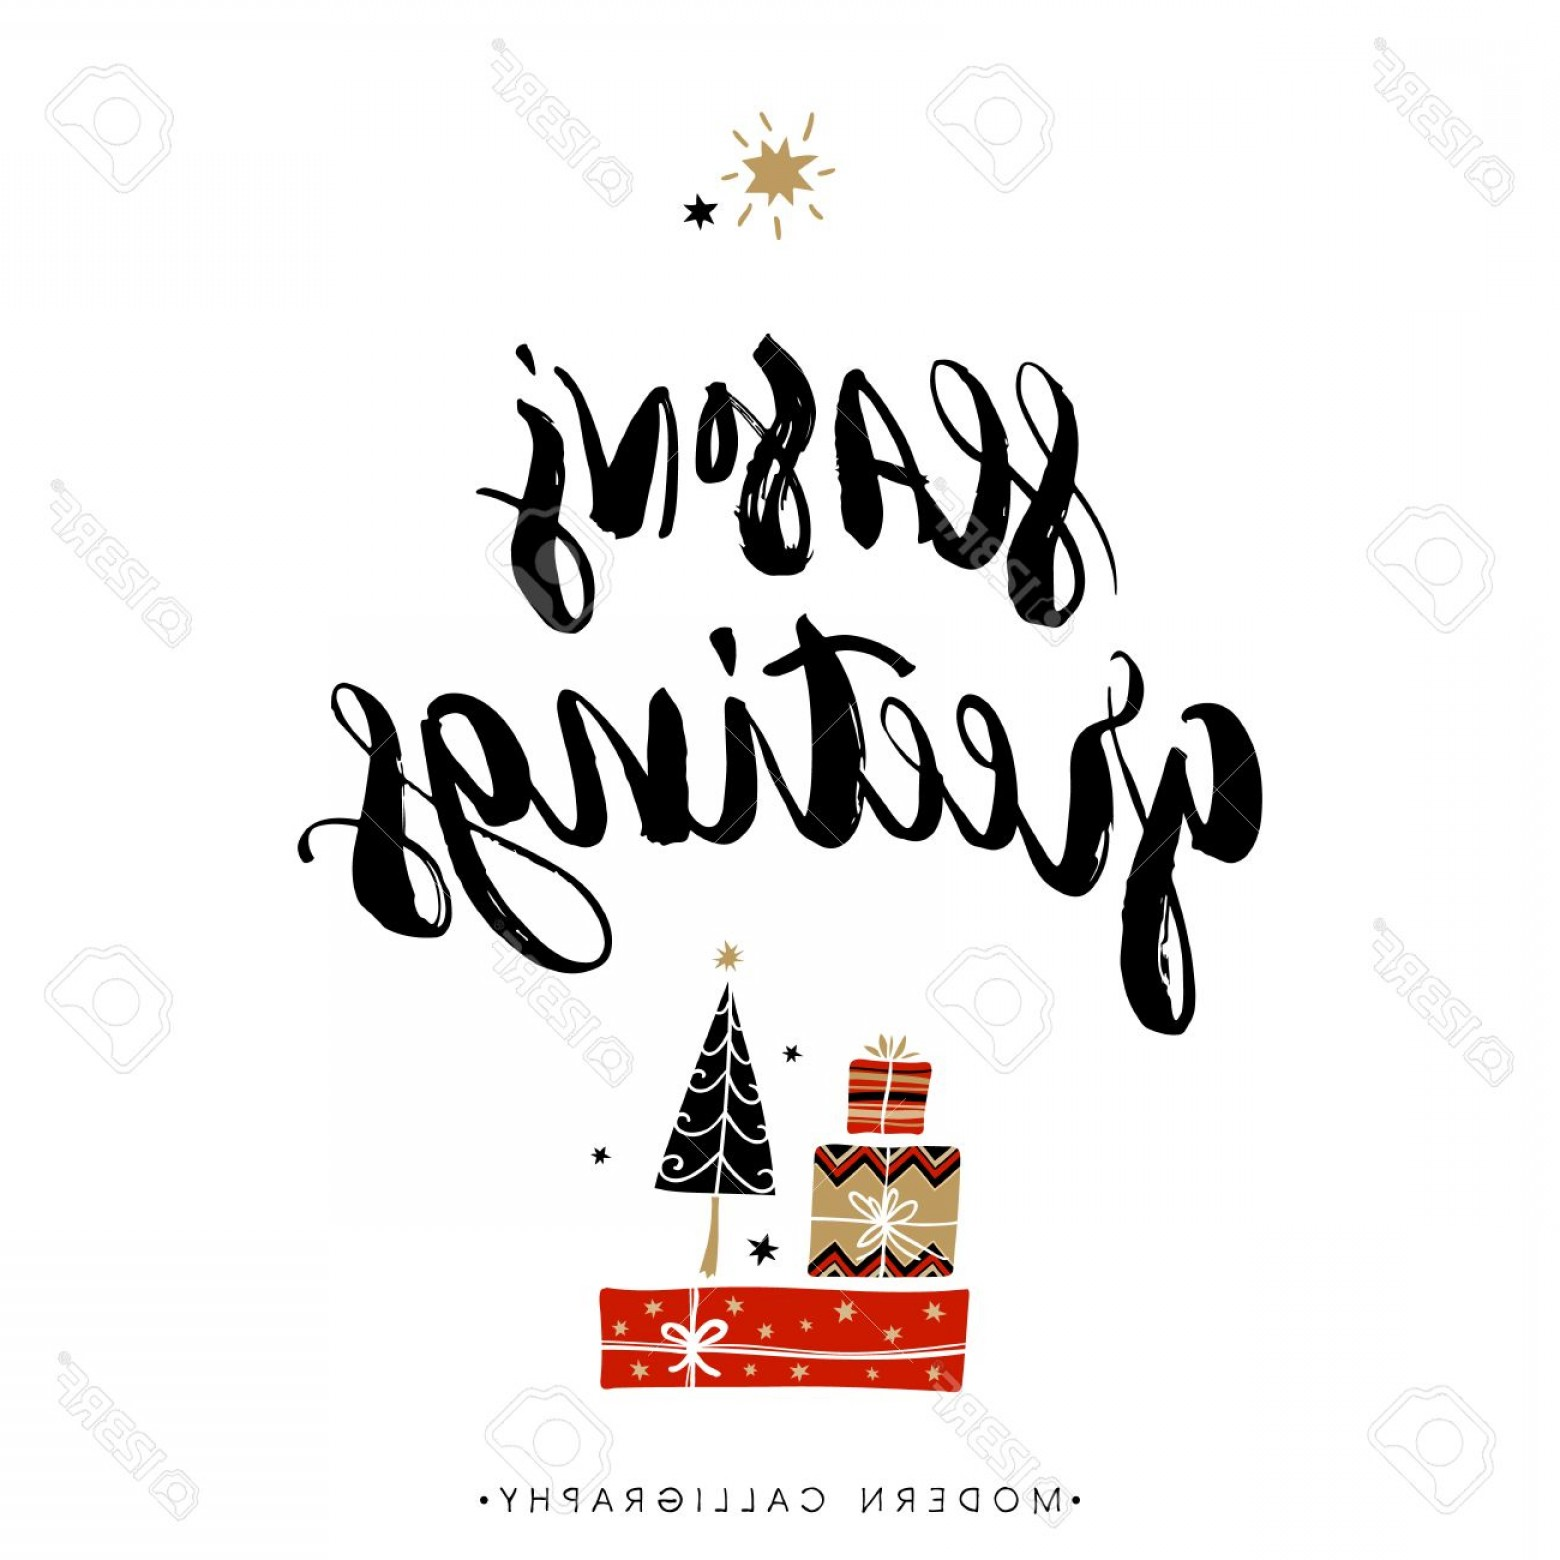 Season S Greetings Vector Free: Photostock Vector Season S Greetings Christmas Calligraphy Handwritten Modern Brush Lettering Hand Drawn Design Elemen